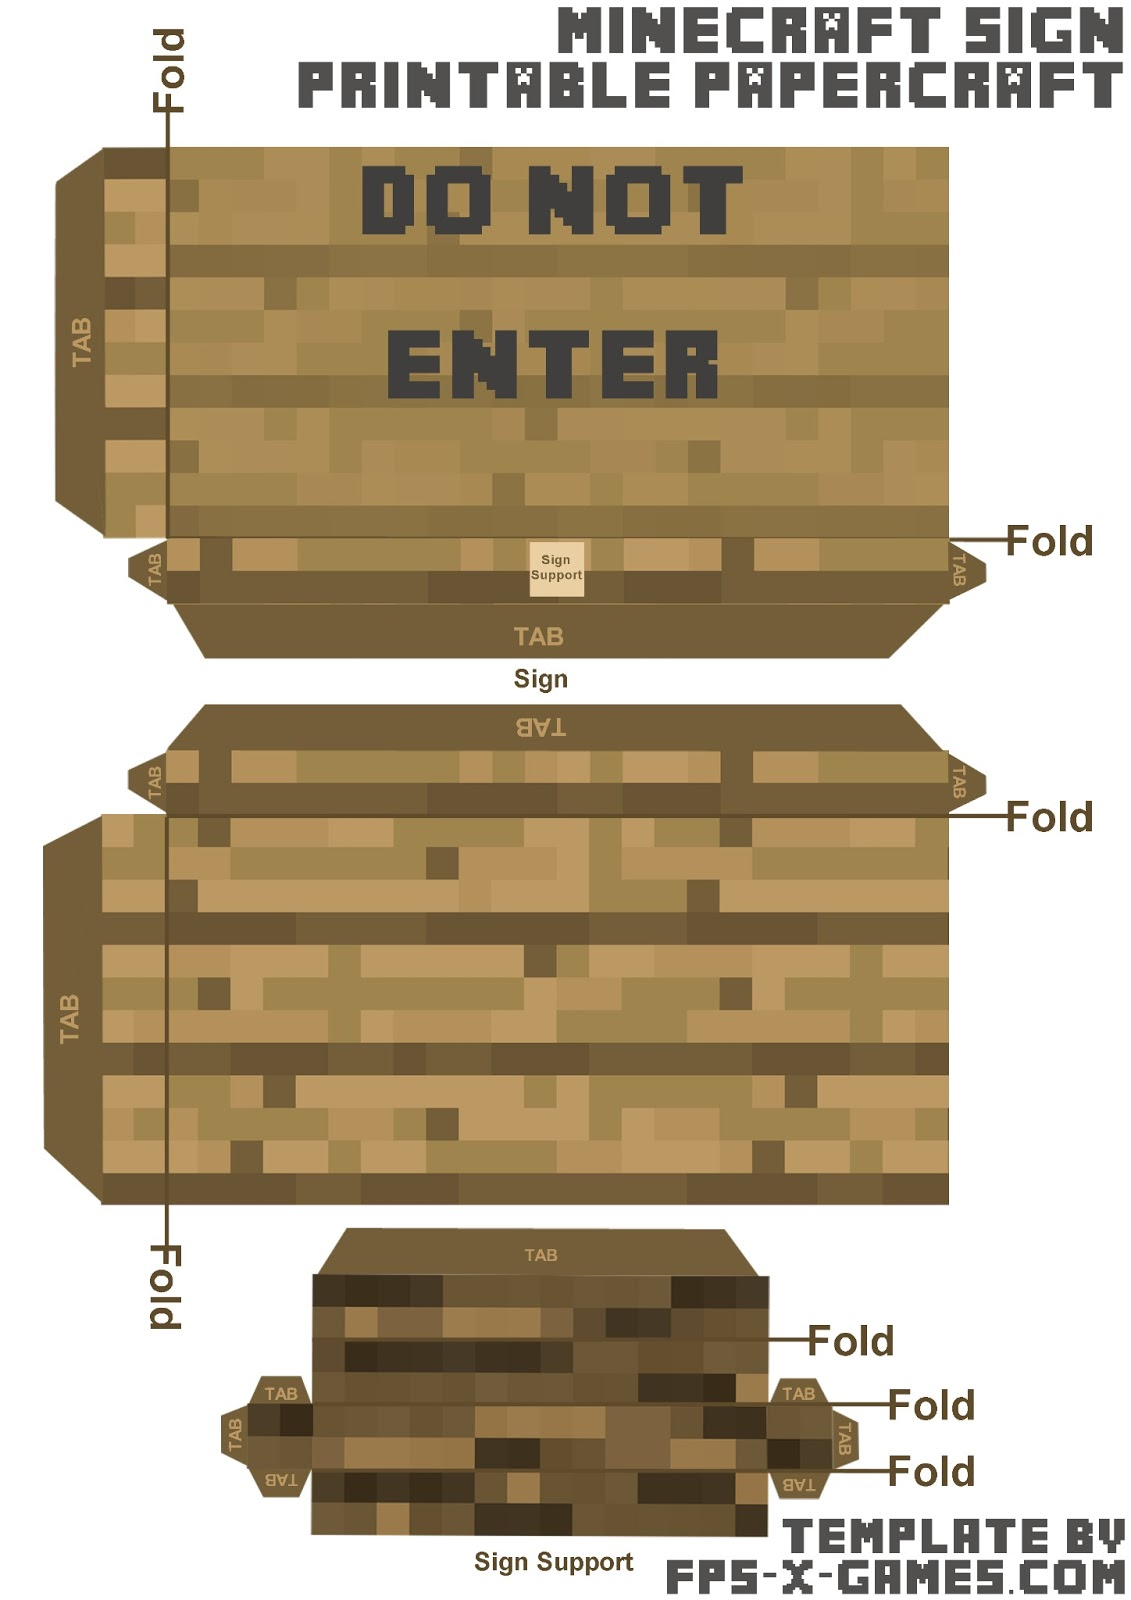 Minecraft papercraft do not enter sign template cut out